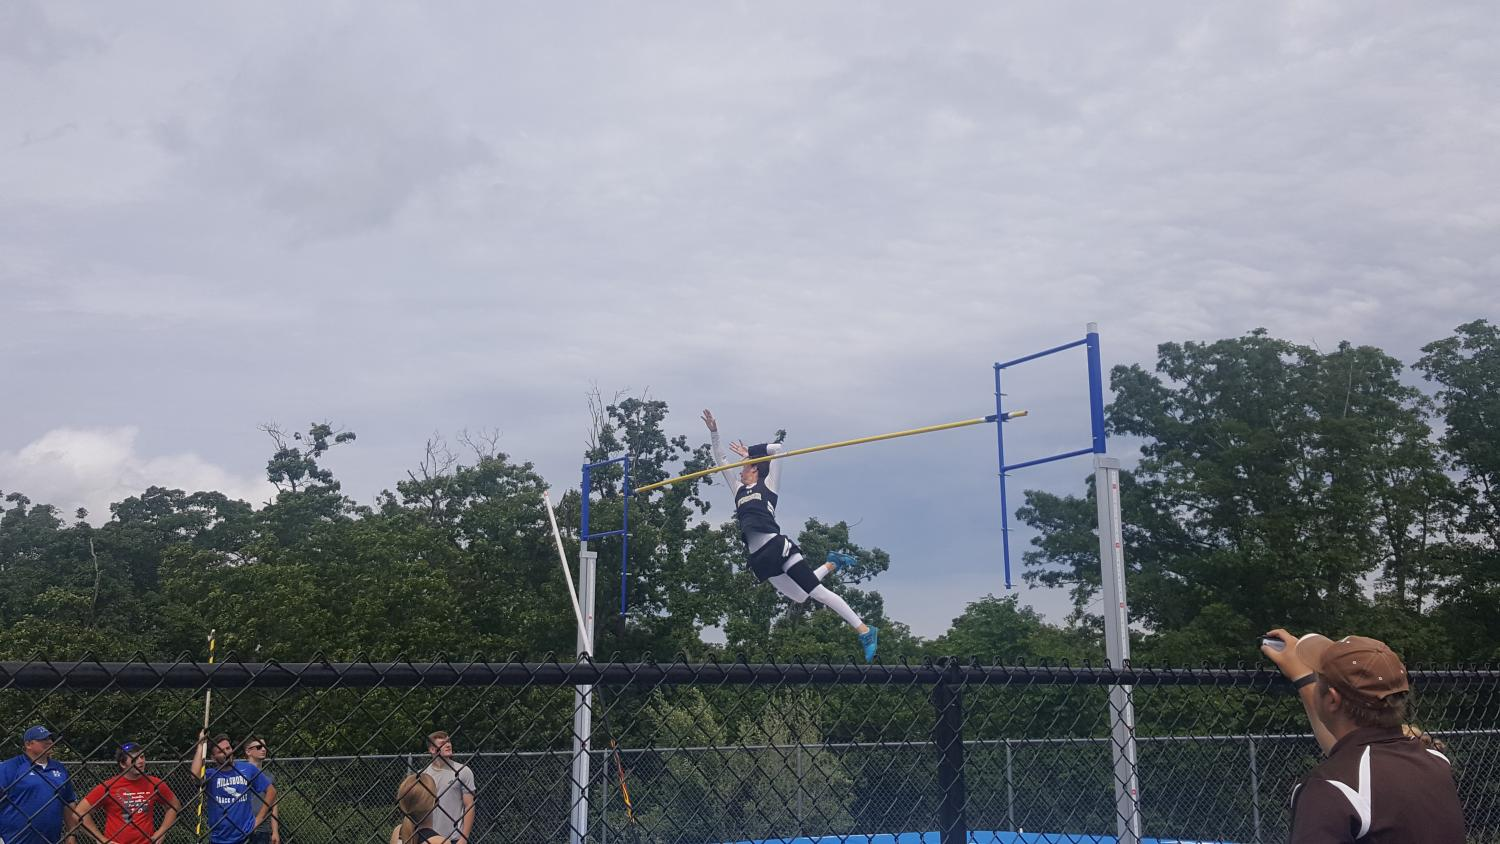 Nicole Barton took first place in pole vault on Saturday at Hillsboro.